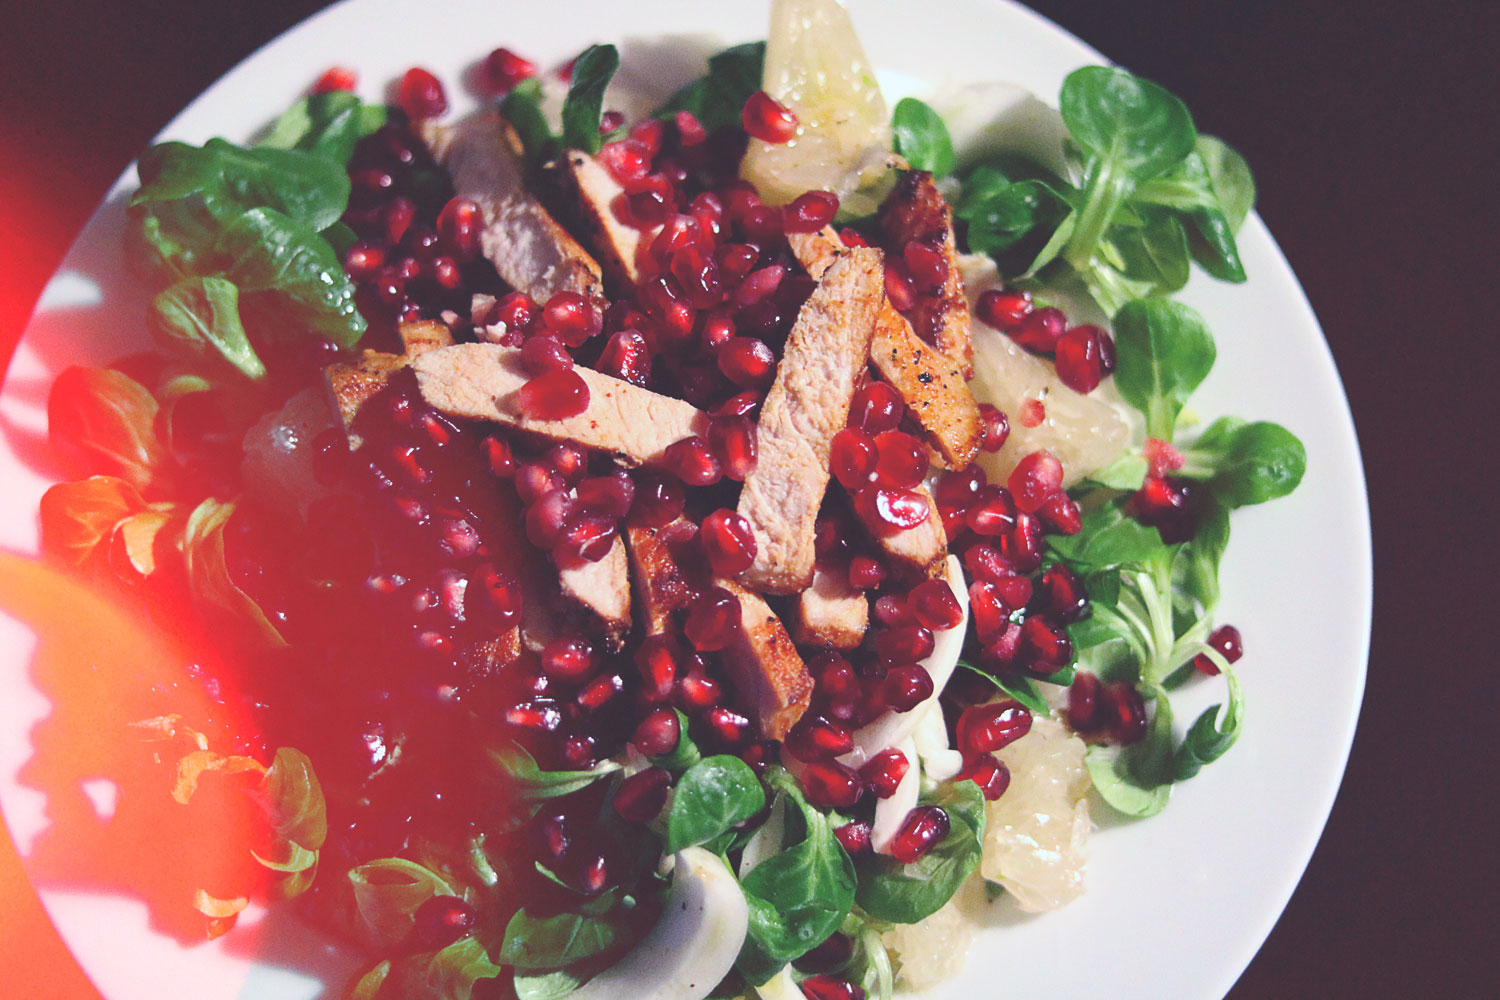 allthesomethings-Salat mit Pute und Pomelo-somethingdelicous